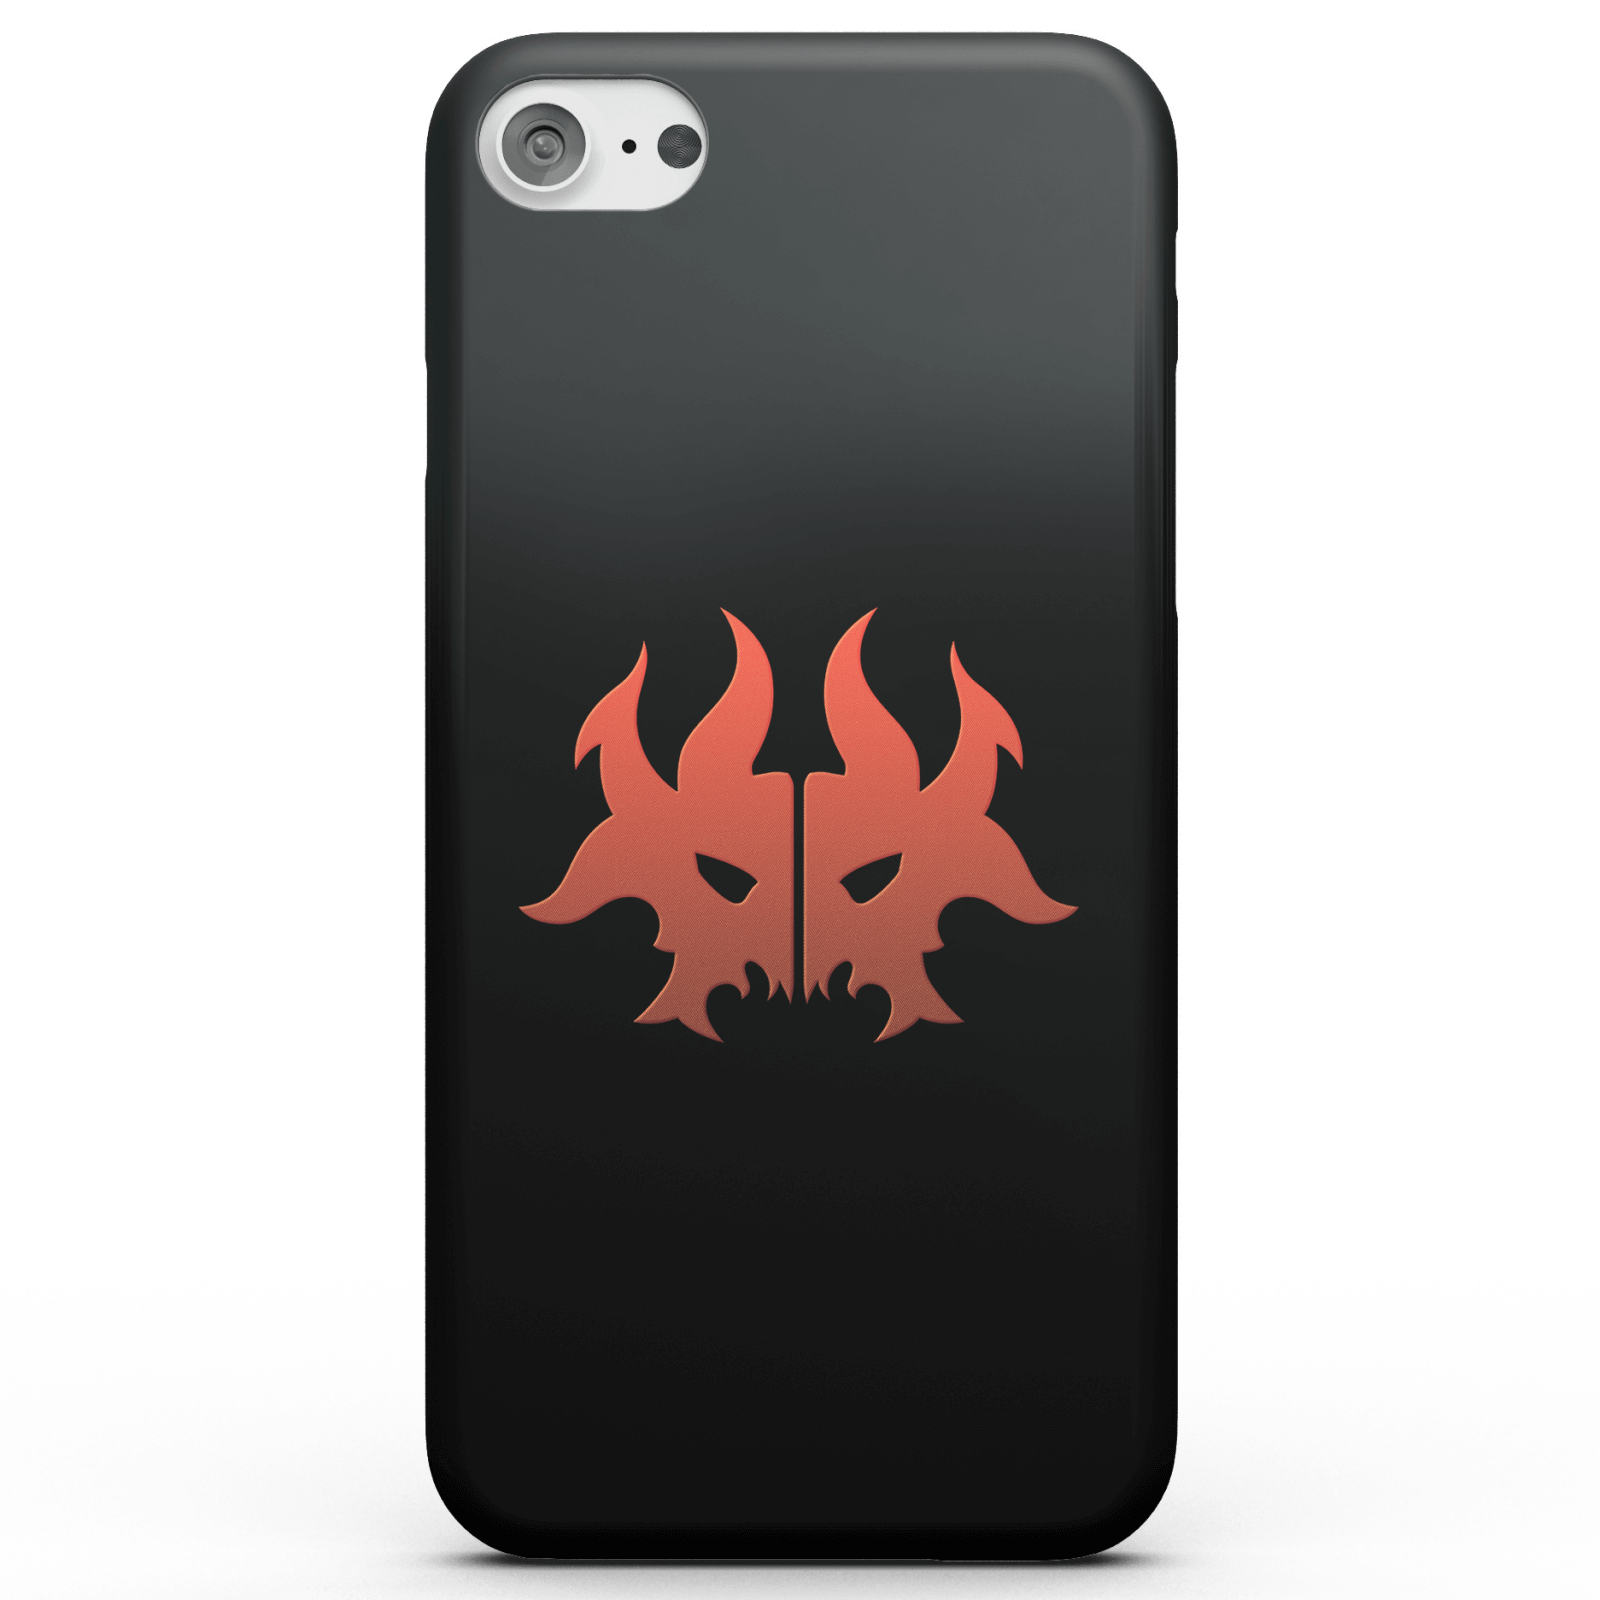 Funda Móvil Magic The Gathering Rakdos para iPhone y Android - Samsung Note 8 - Carcasa rígida - Mate de Magic The Gathering